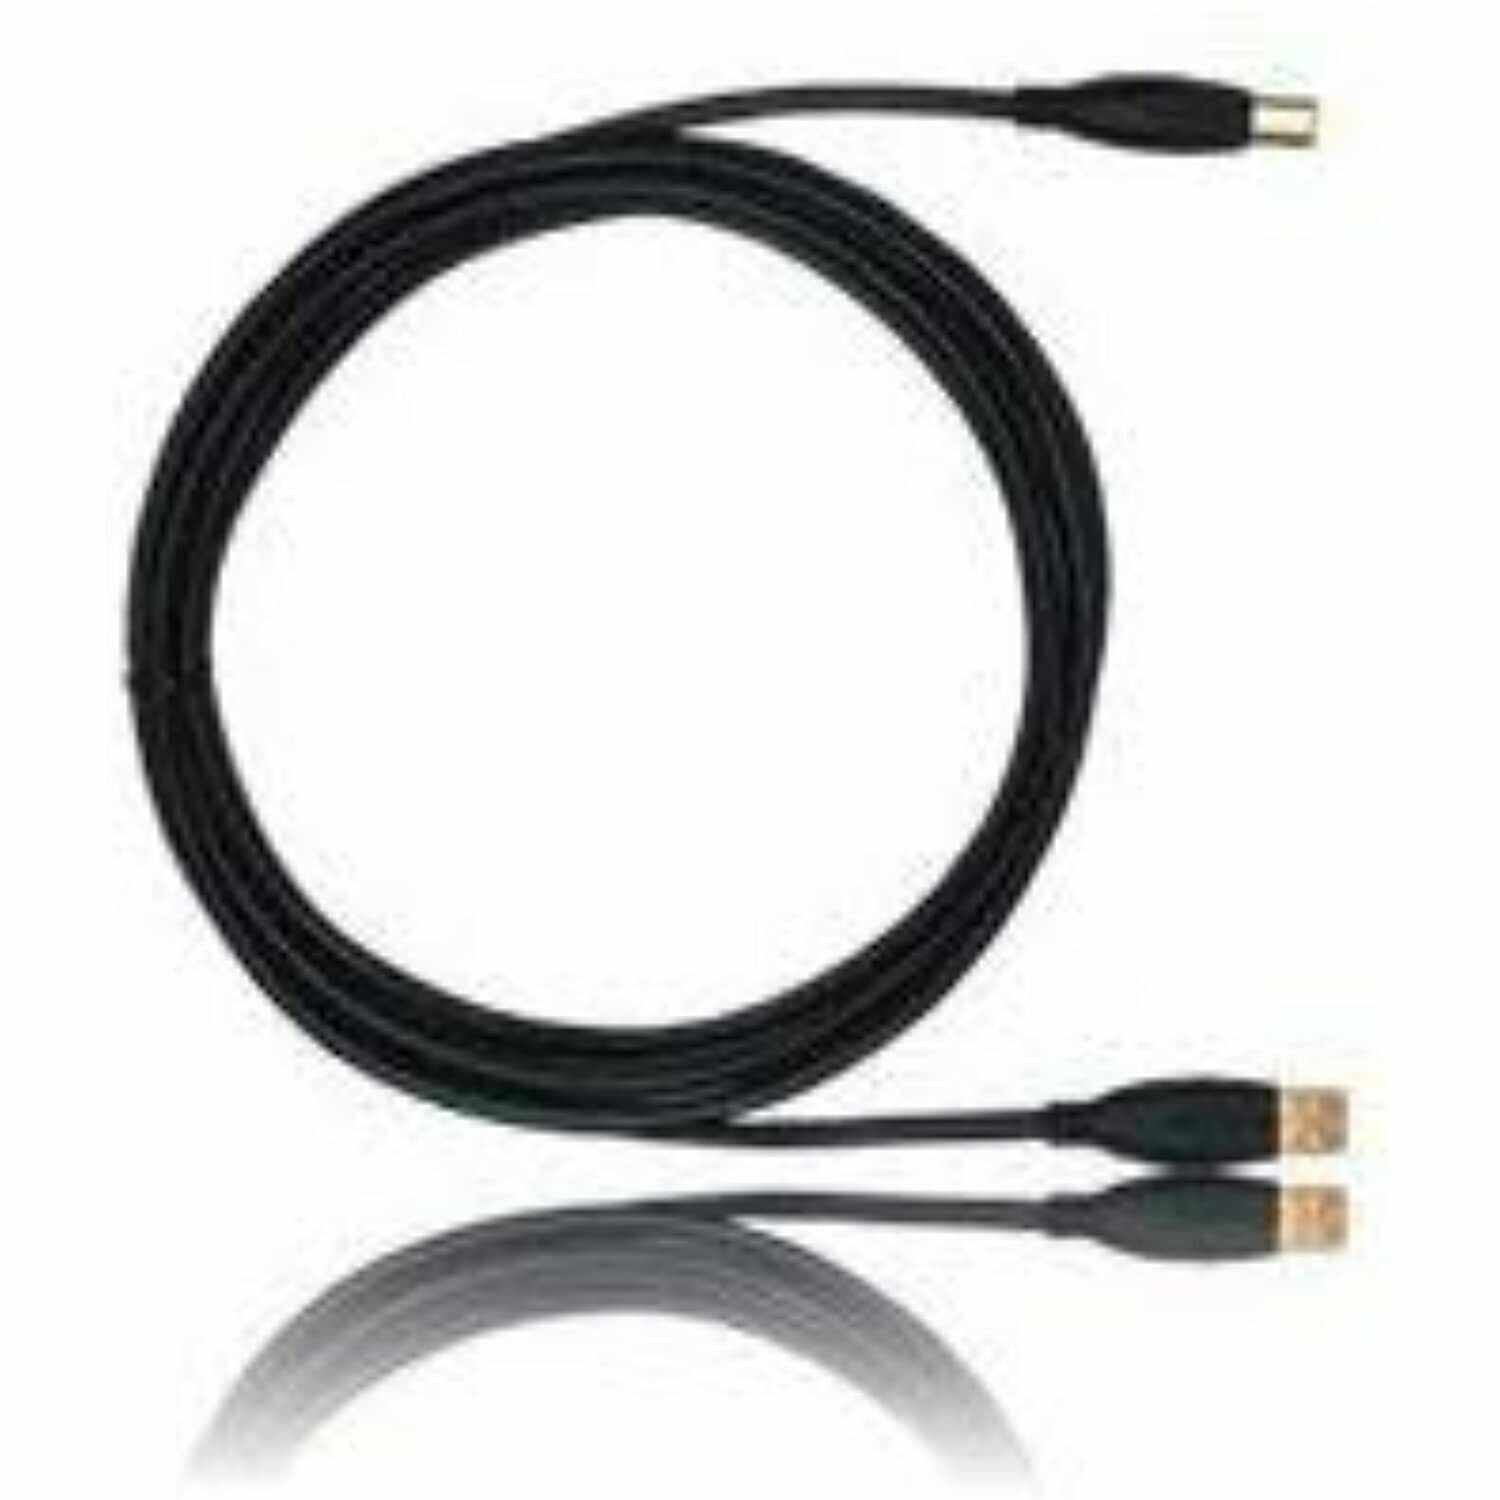 10-Ft. USB 2.0 Cable with A-B Male Connectors